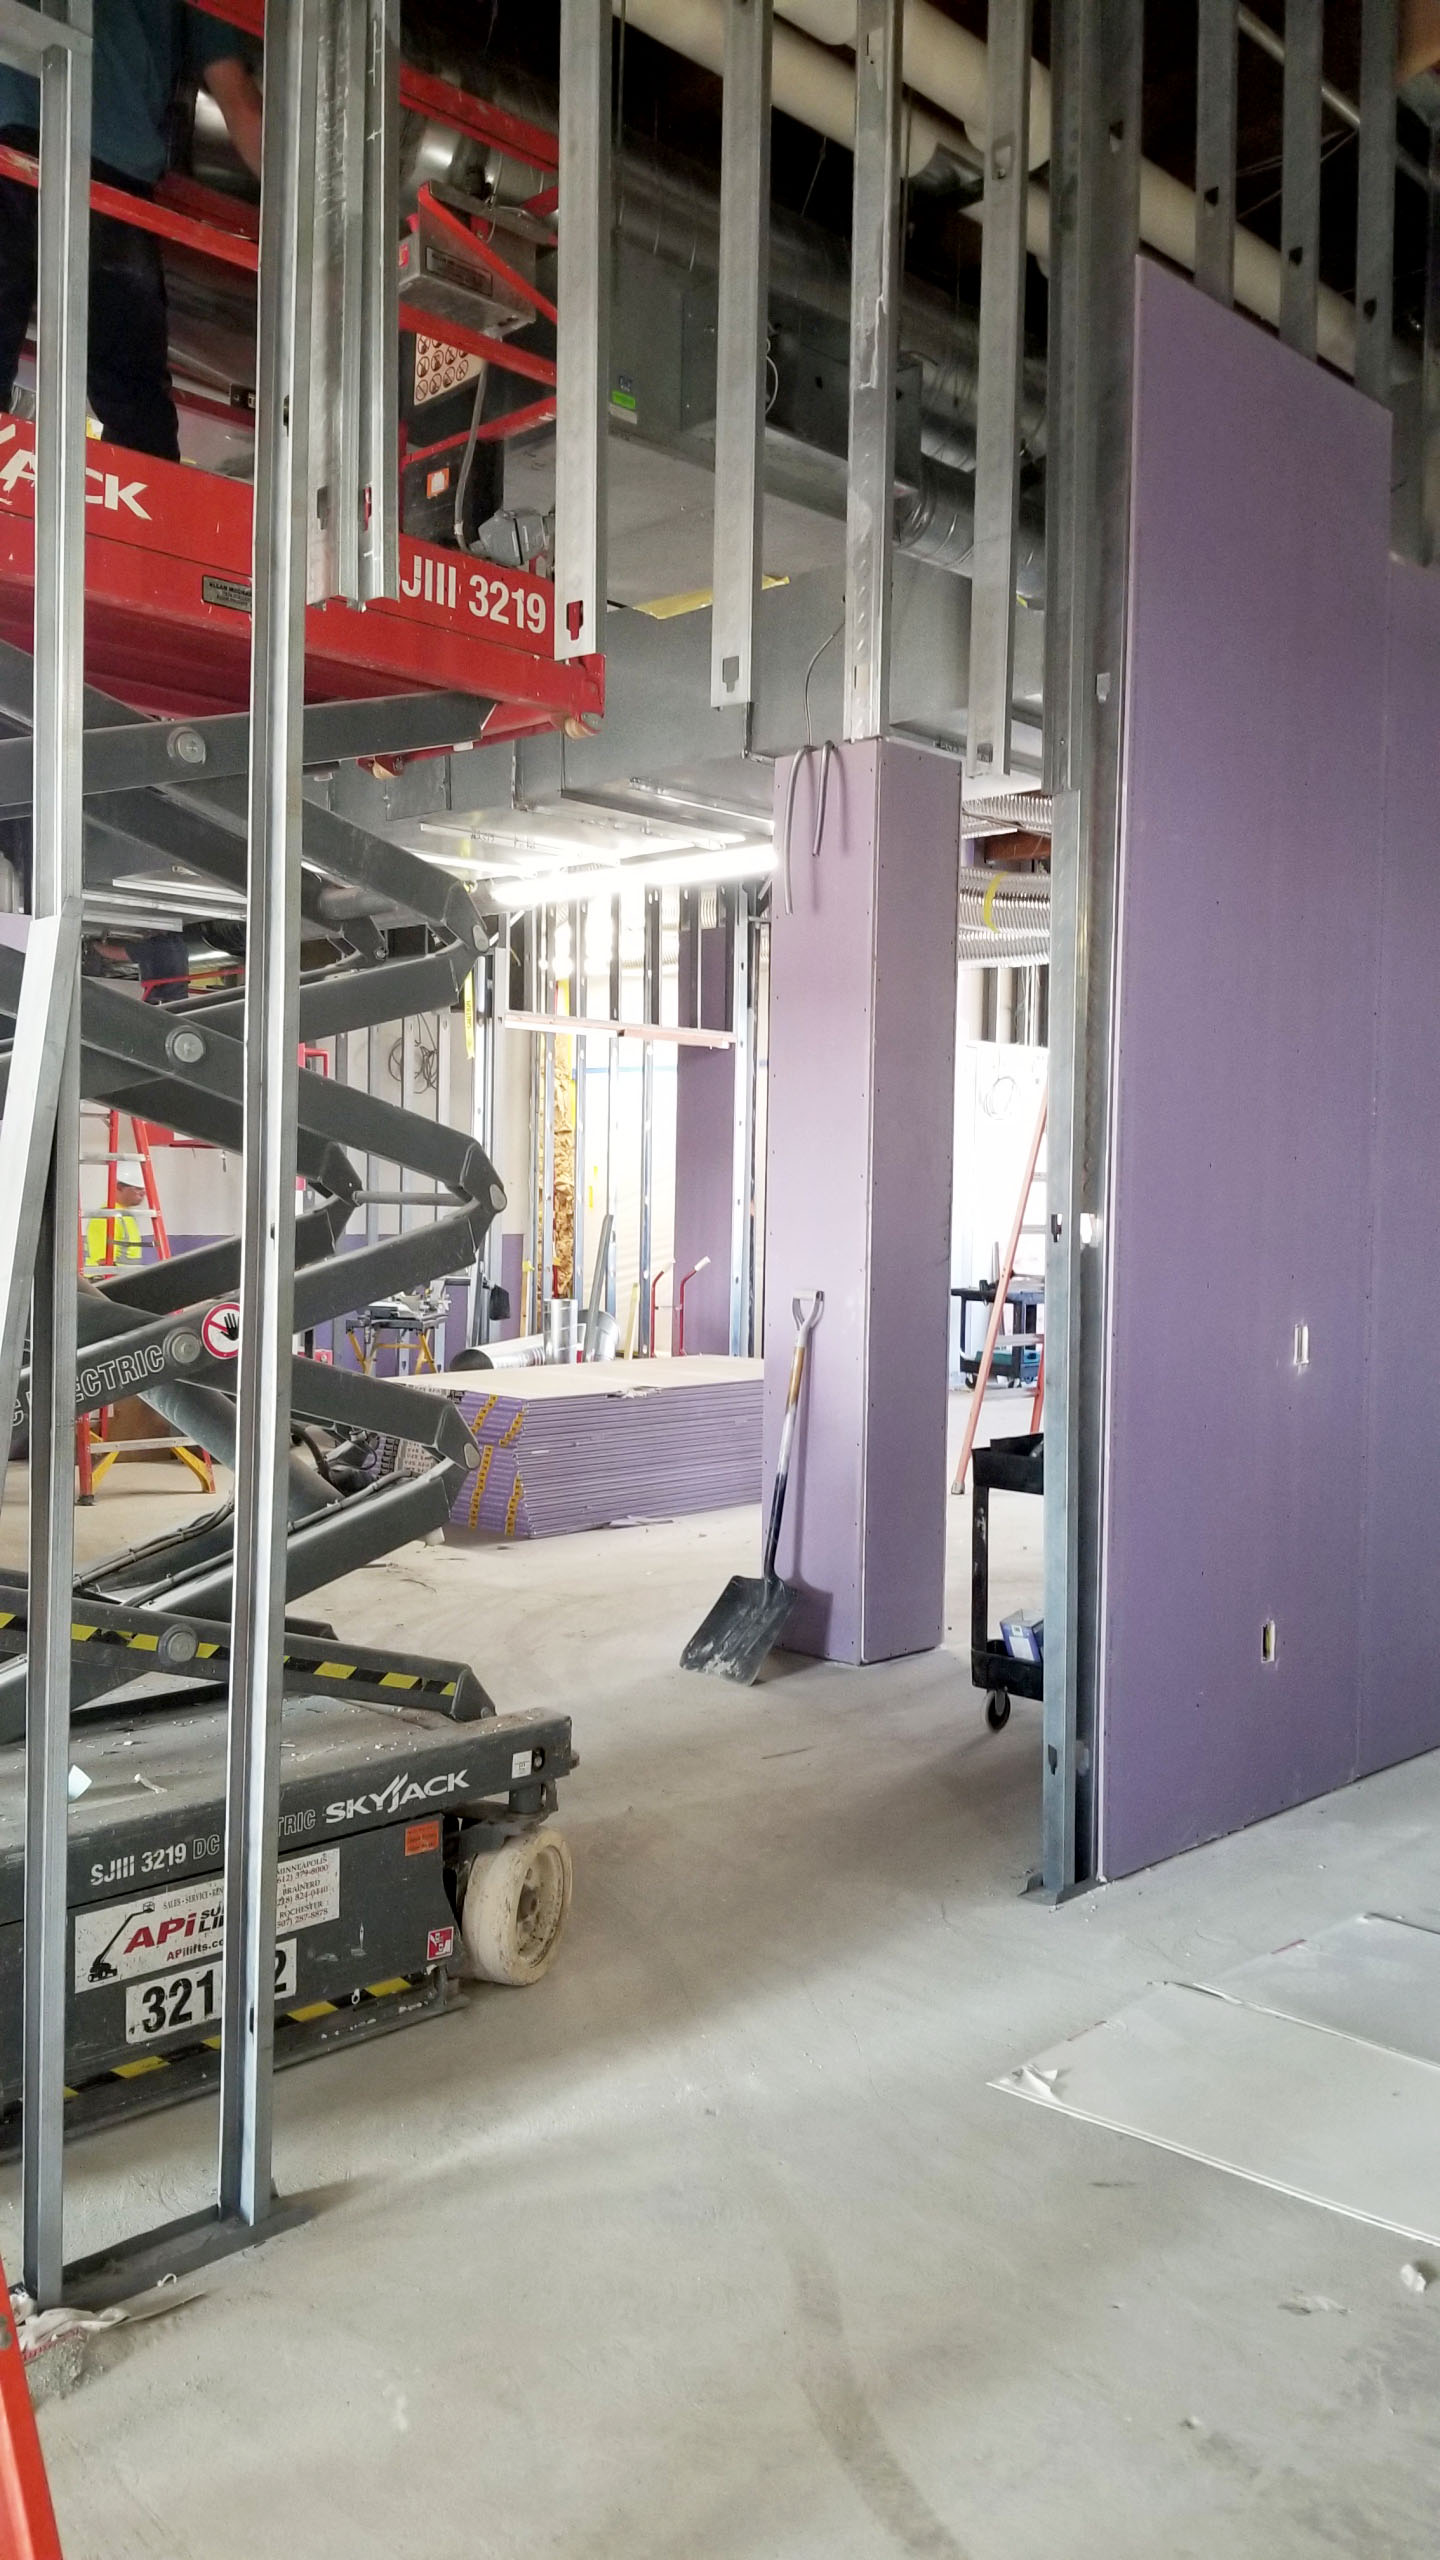 It is always interesting watching walls going up!